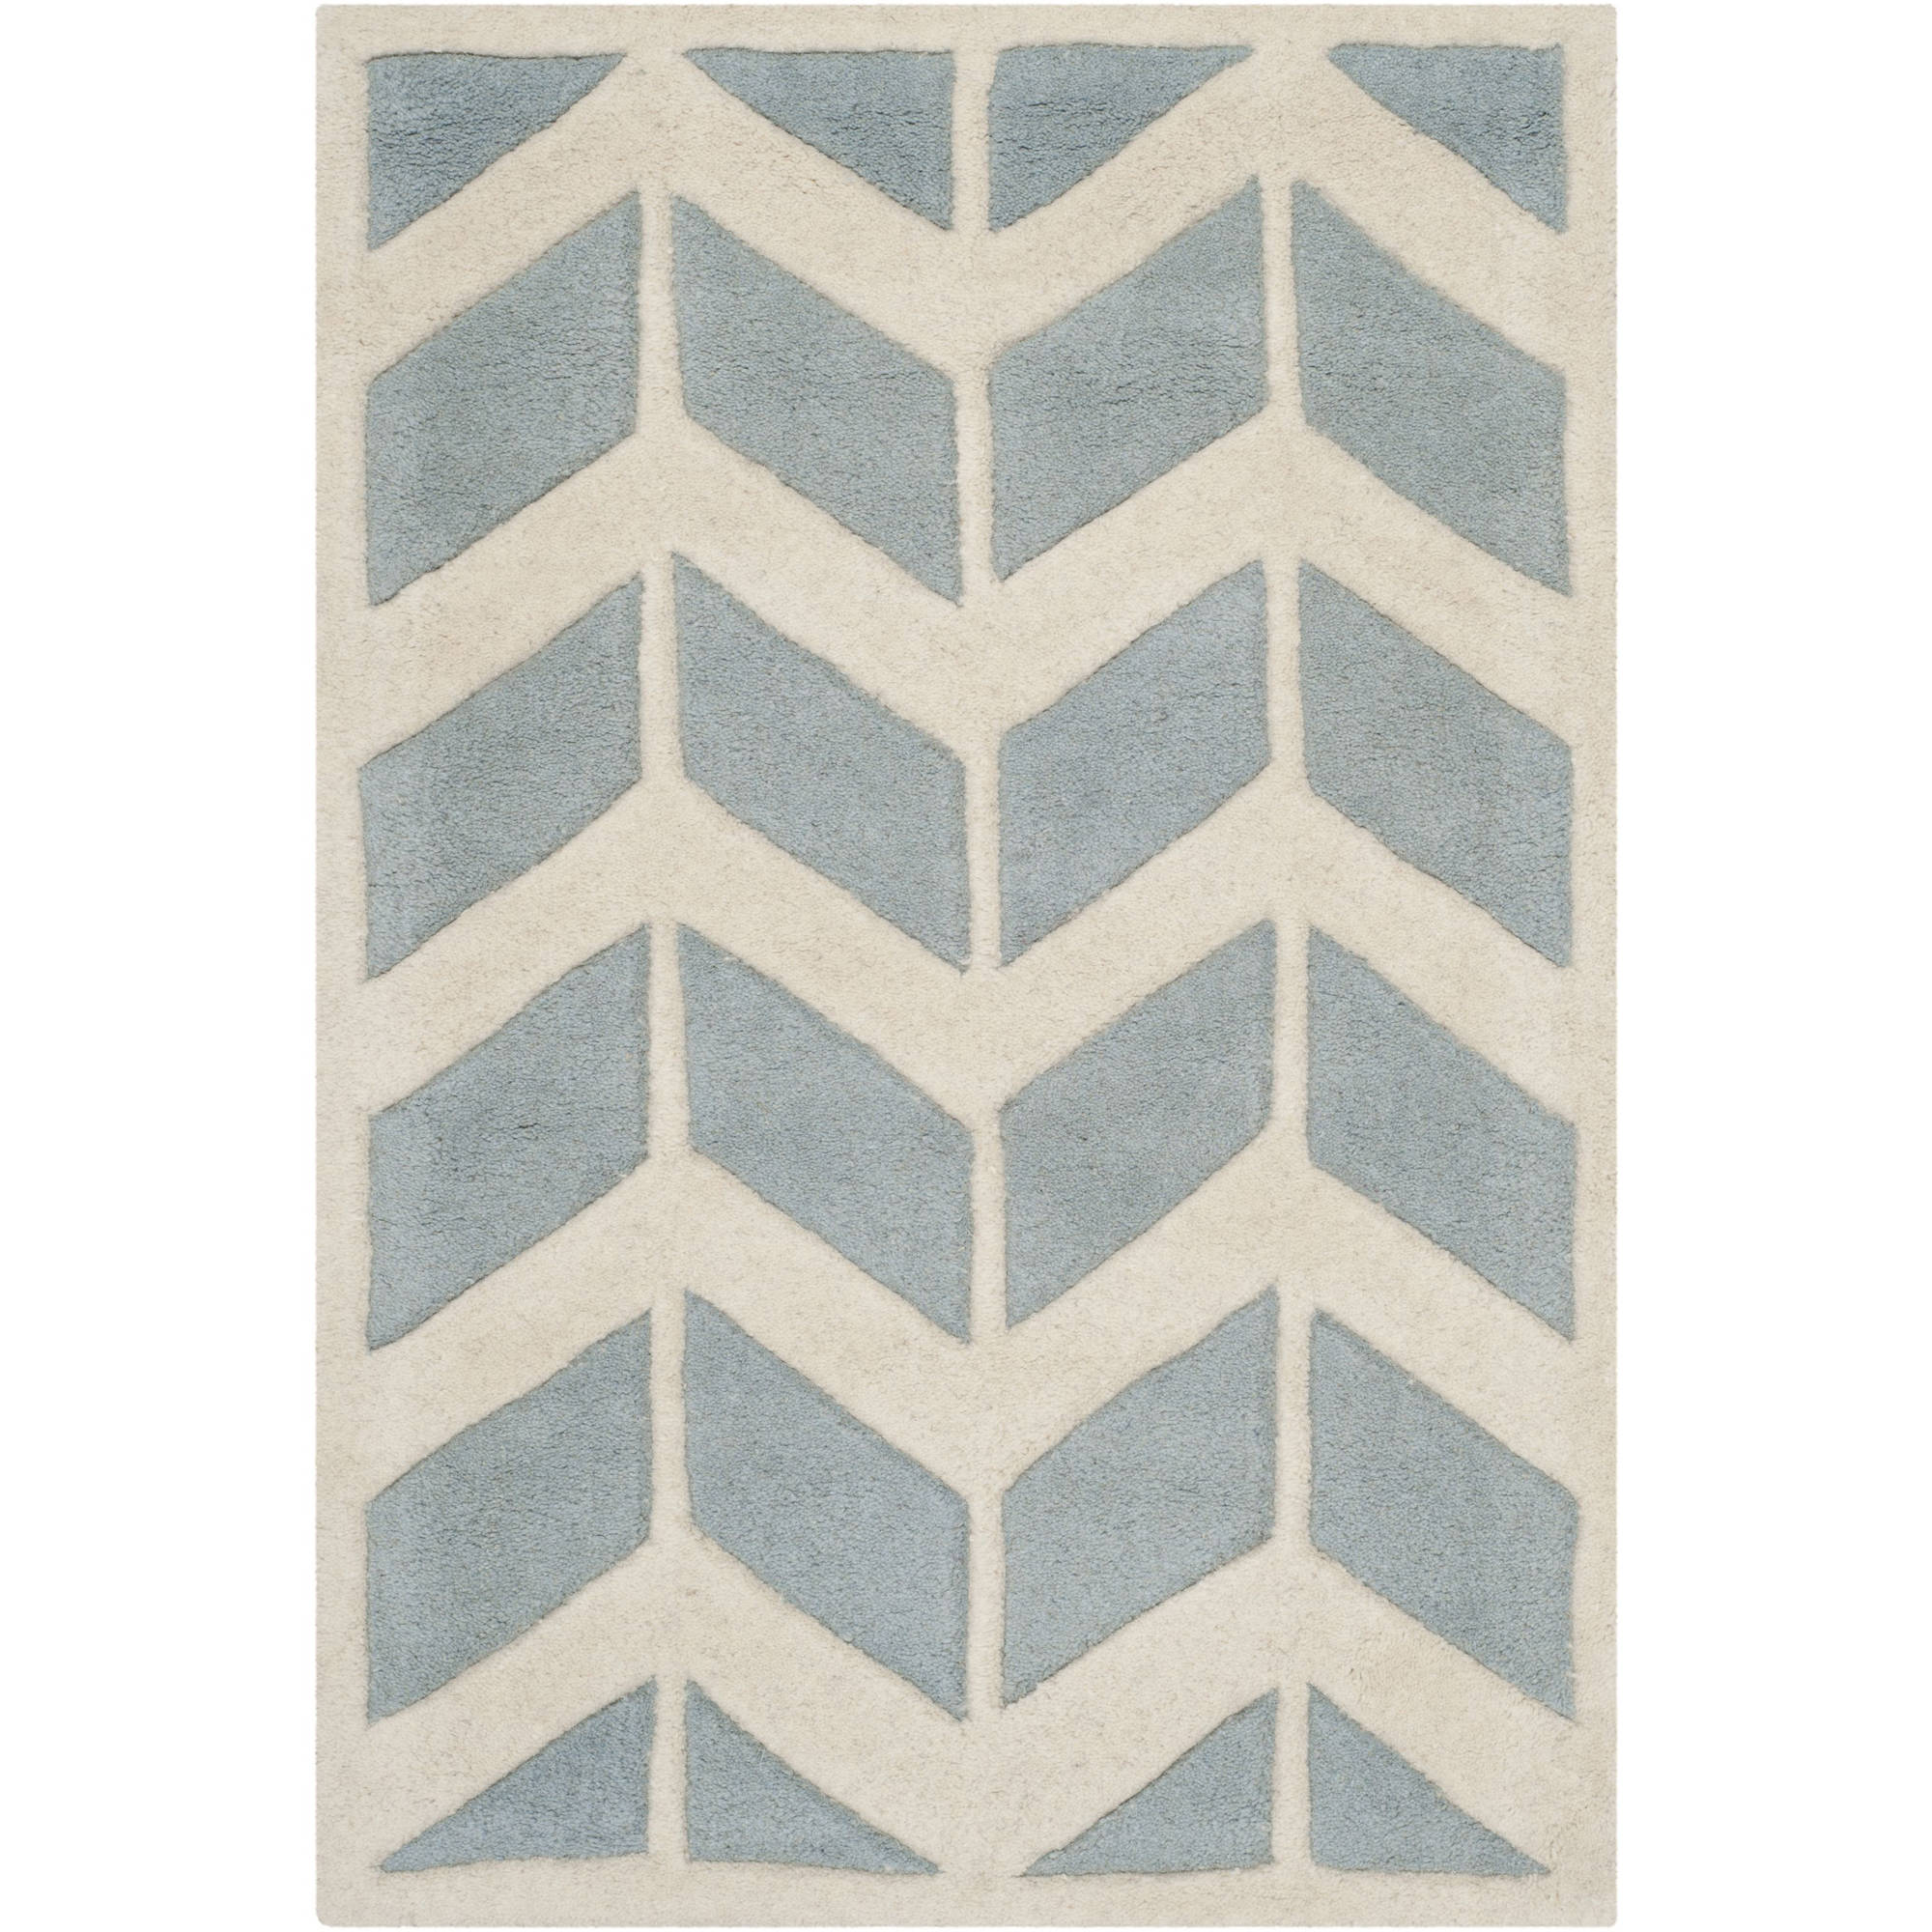 Safavieh Chatham Easton Zigzag Stripes Area Rug or Runner